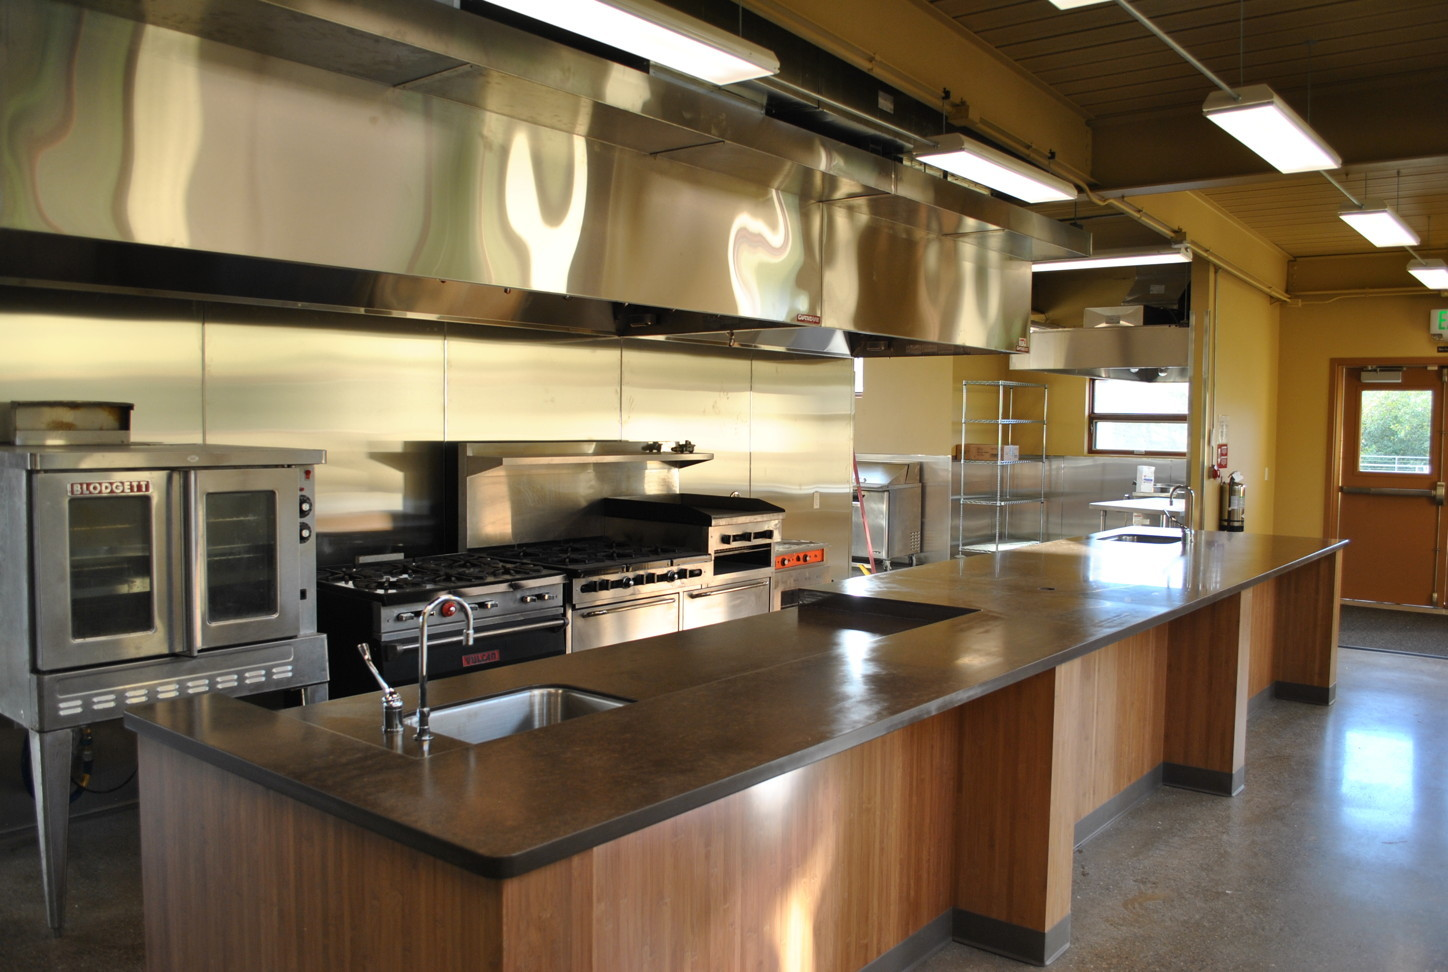 21 Acres Incubator Kitchen